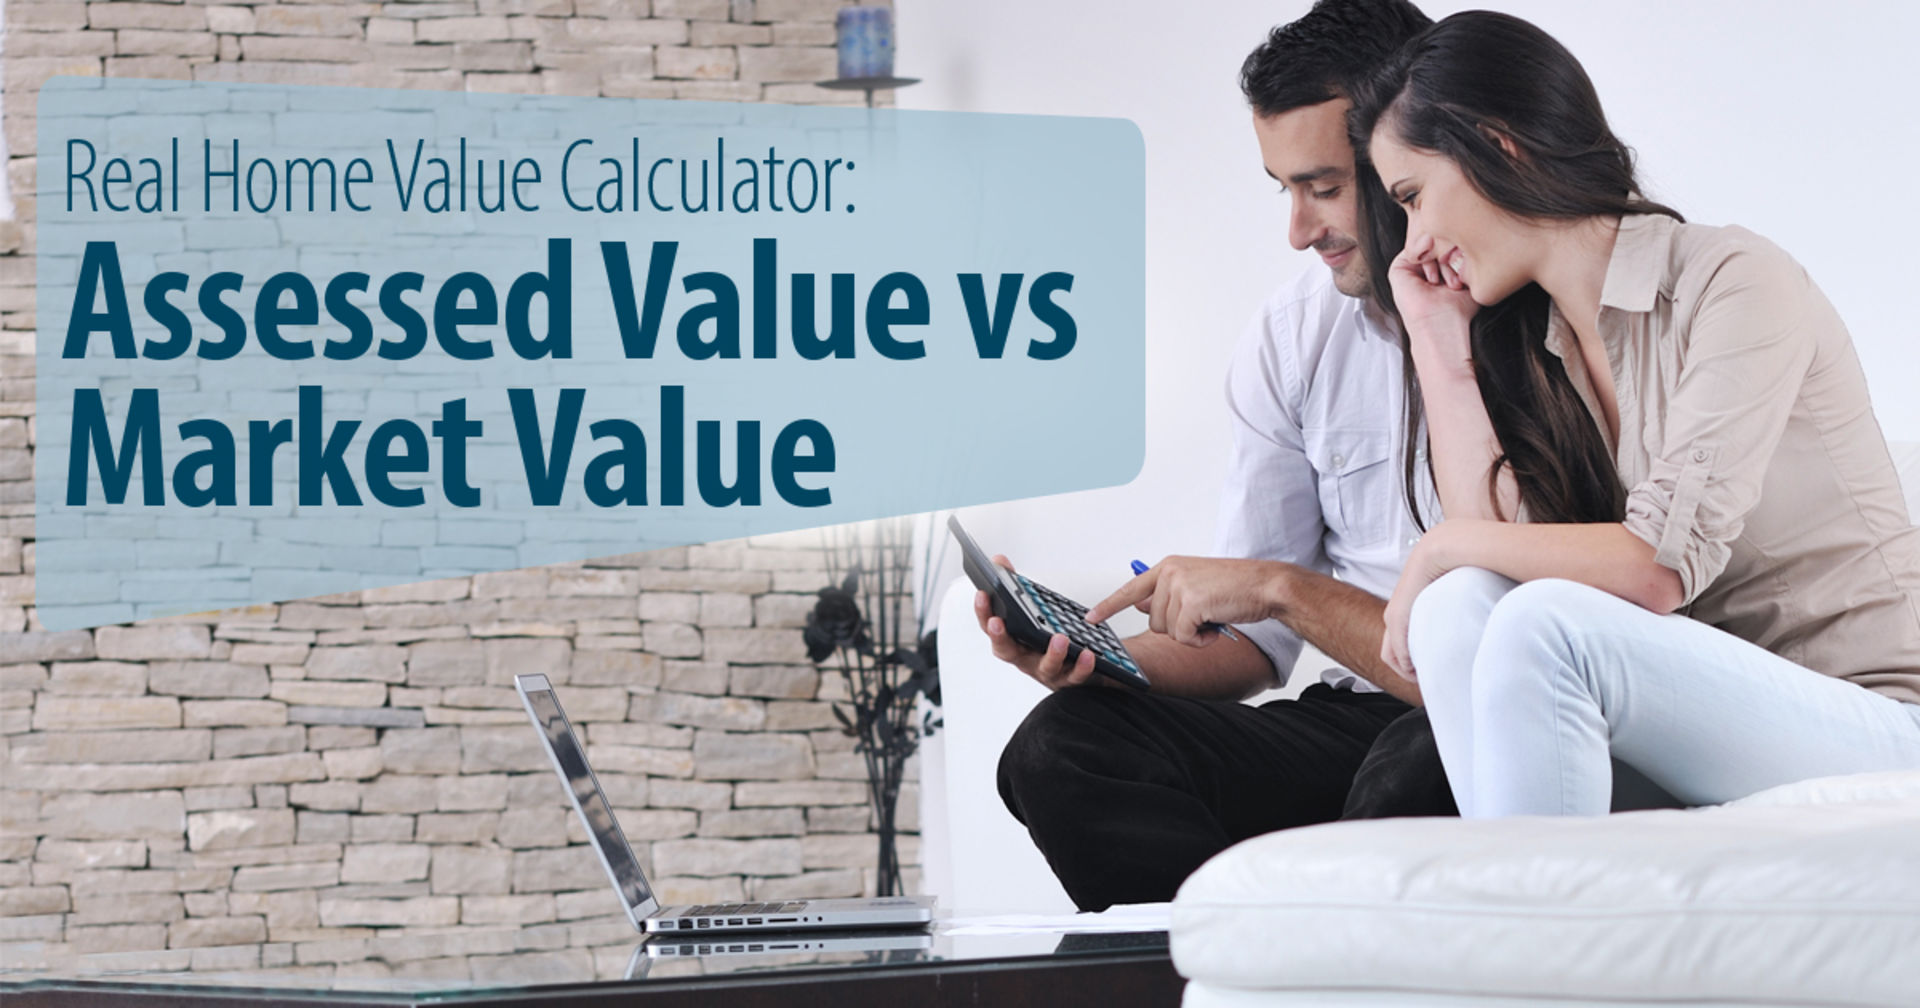 Real Home Value Calculator: Assessed Value vs. Market Value